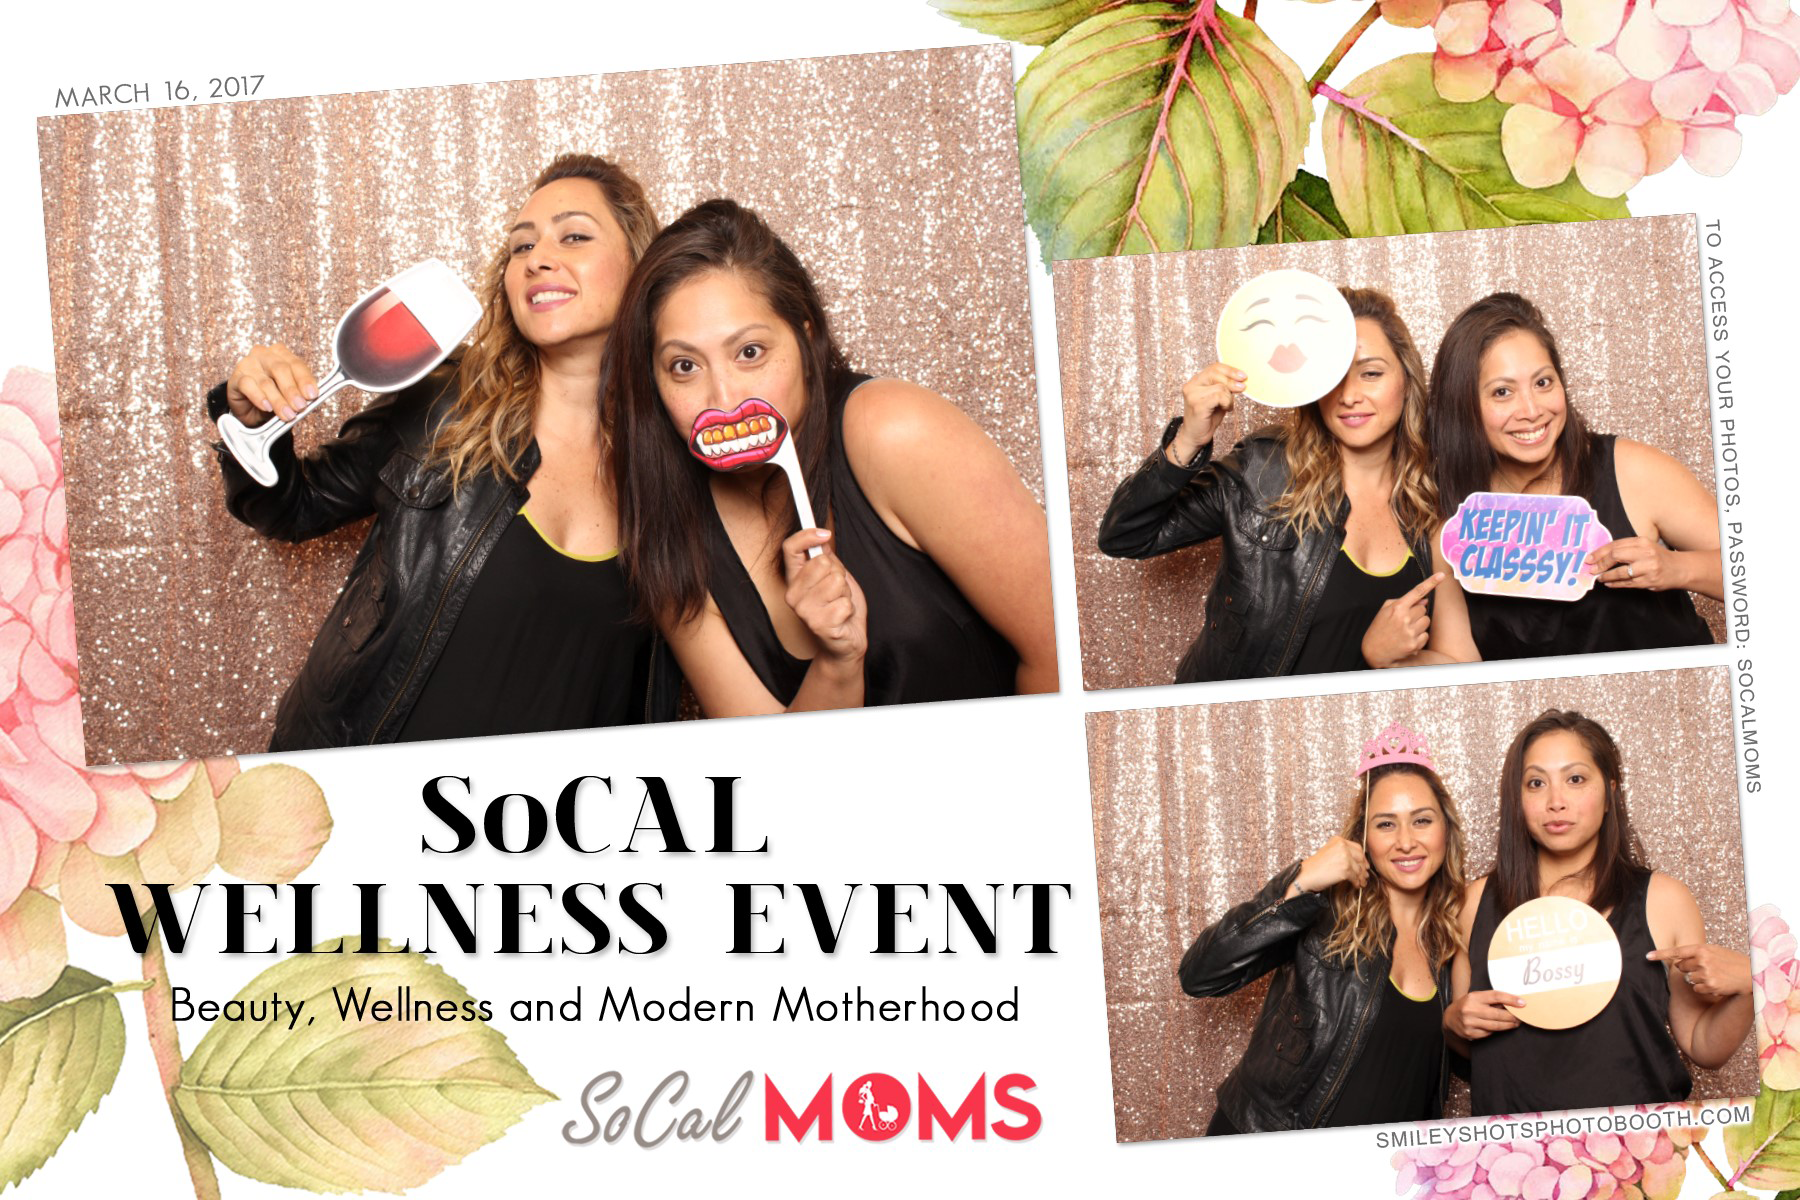 Socal Wellness Event Socal Moms Smiley Shots Photo Booth Photobooth (4).png